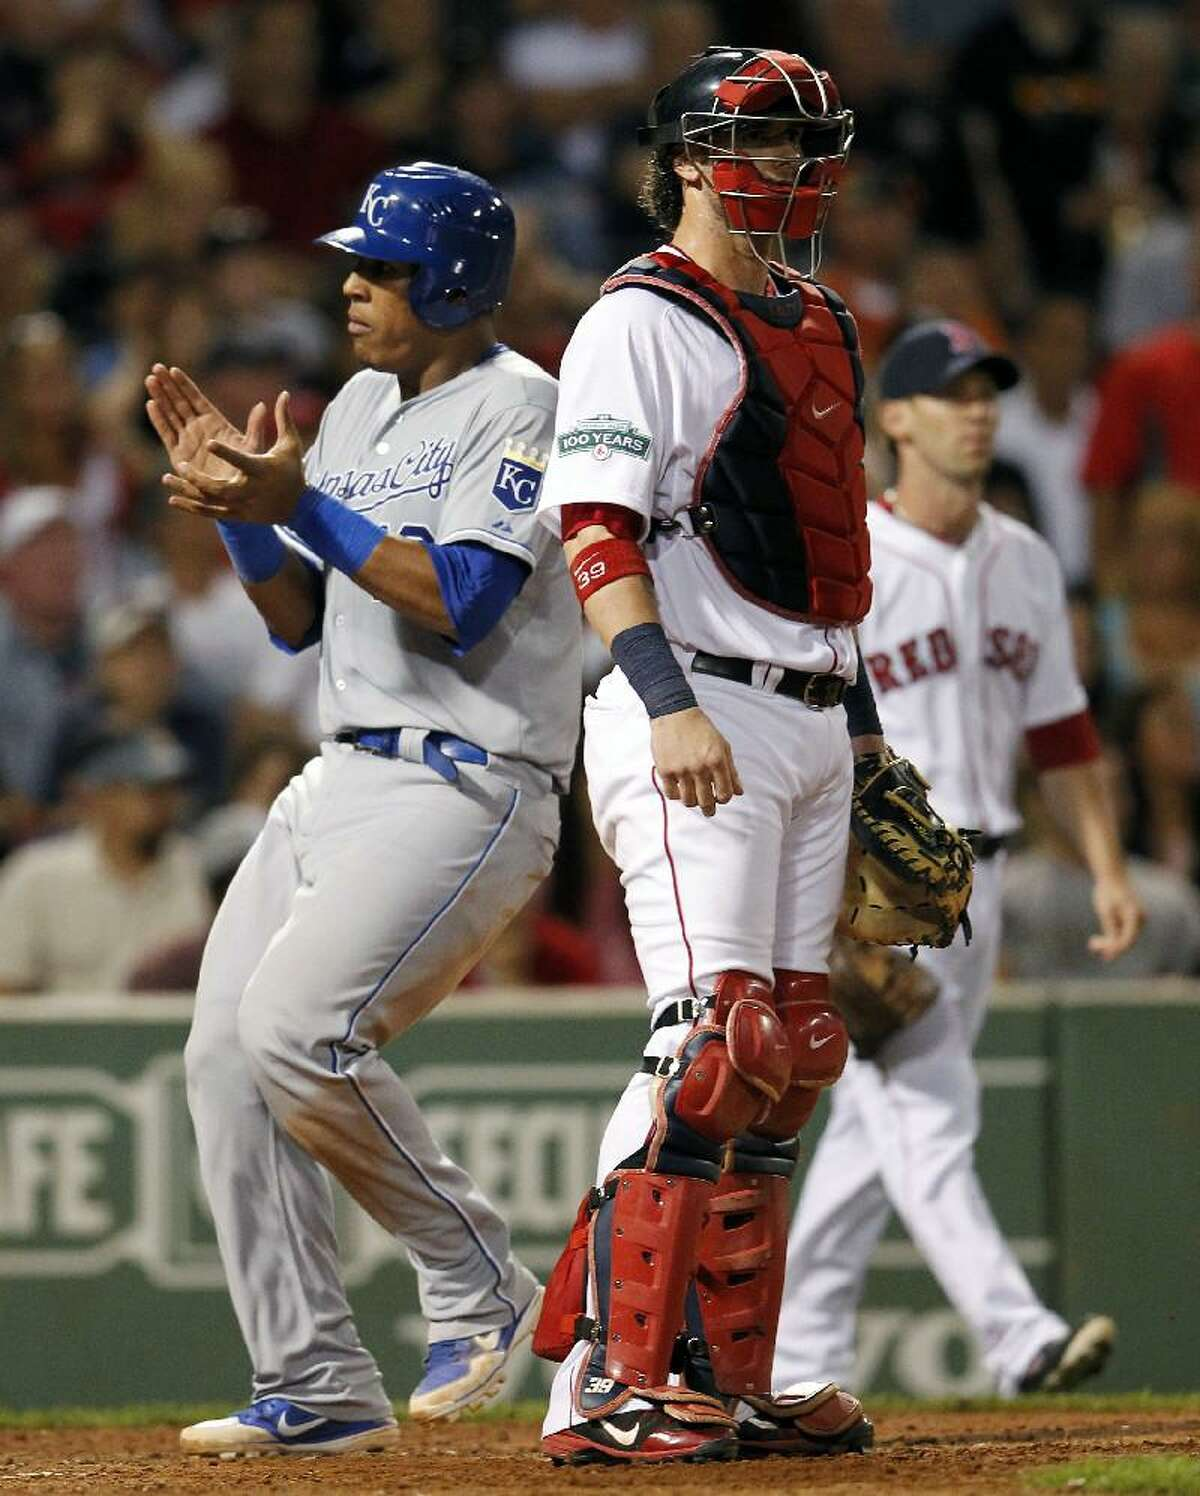 ASSOCIATED PRESS Kansas City Royals' Salvador Perez, left, scores the tying run behind Boston Red Sox's Jarrod Saltalamacchia on a two-run triple by Royals' Mike Moustakas in the seventh inning of Saturday night's game at Fenway Park in Boston. The Red Sox lost 10-9.